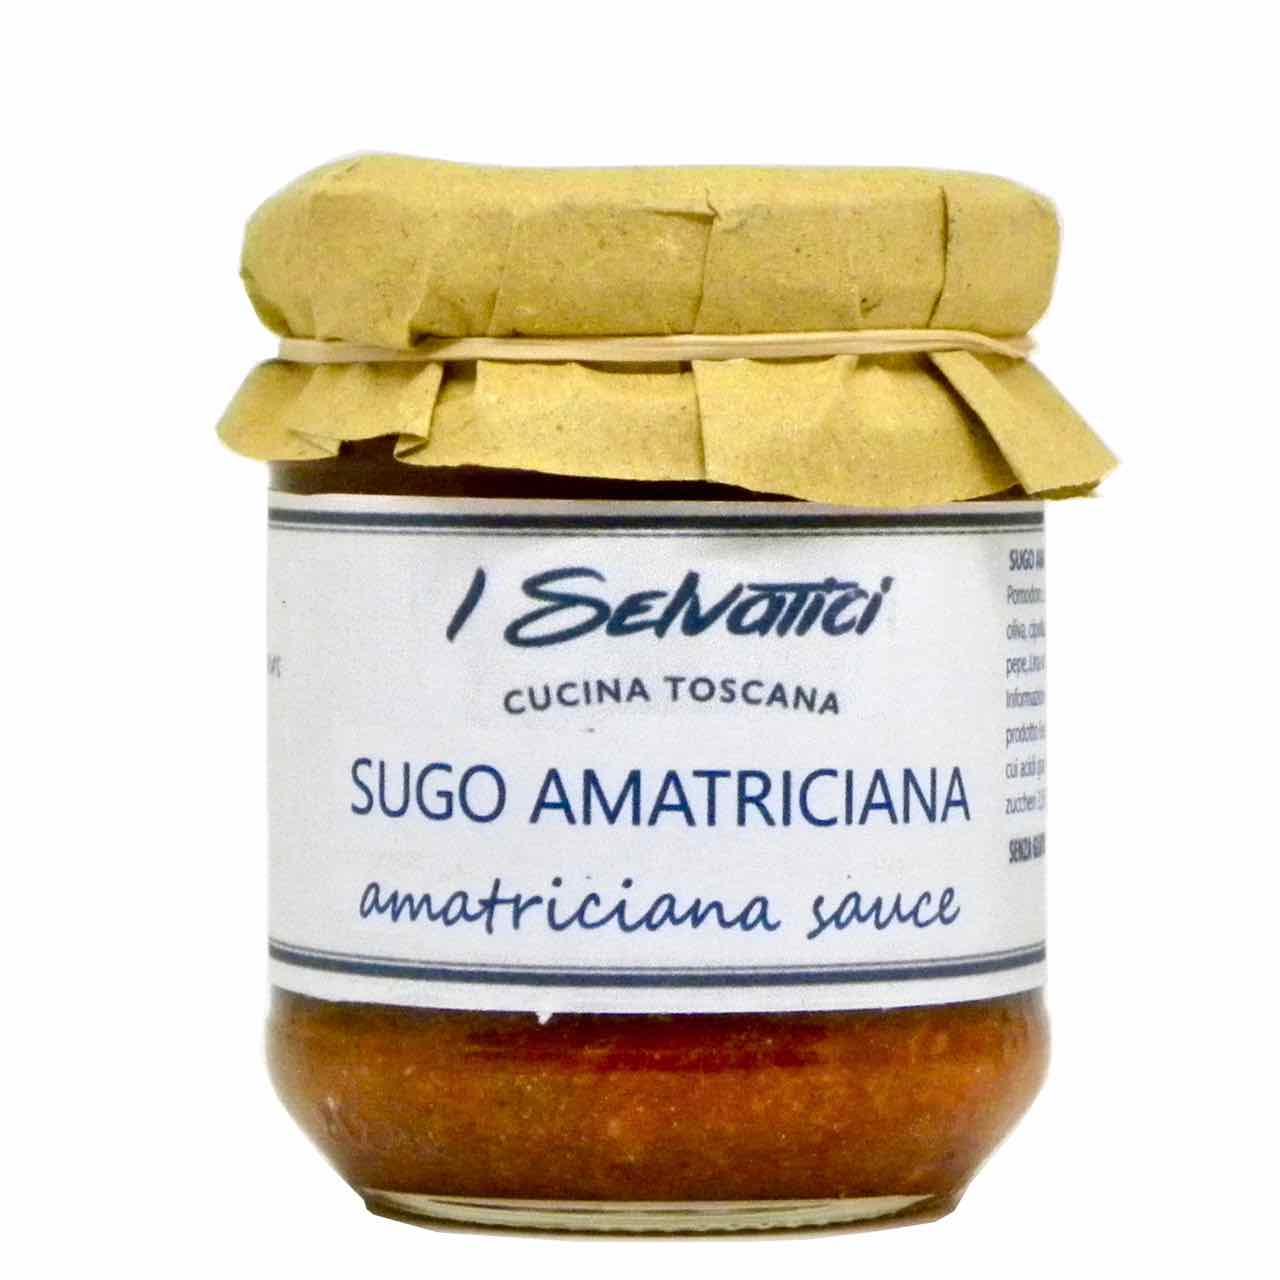 amatriciana sauce – best Italian food – Gustorotondo online food shop – authentic Italian artisan food online